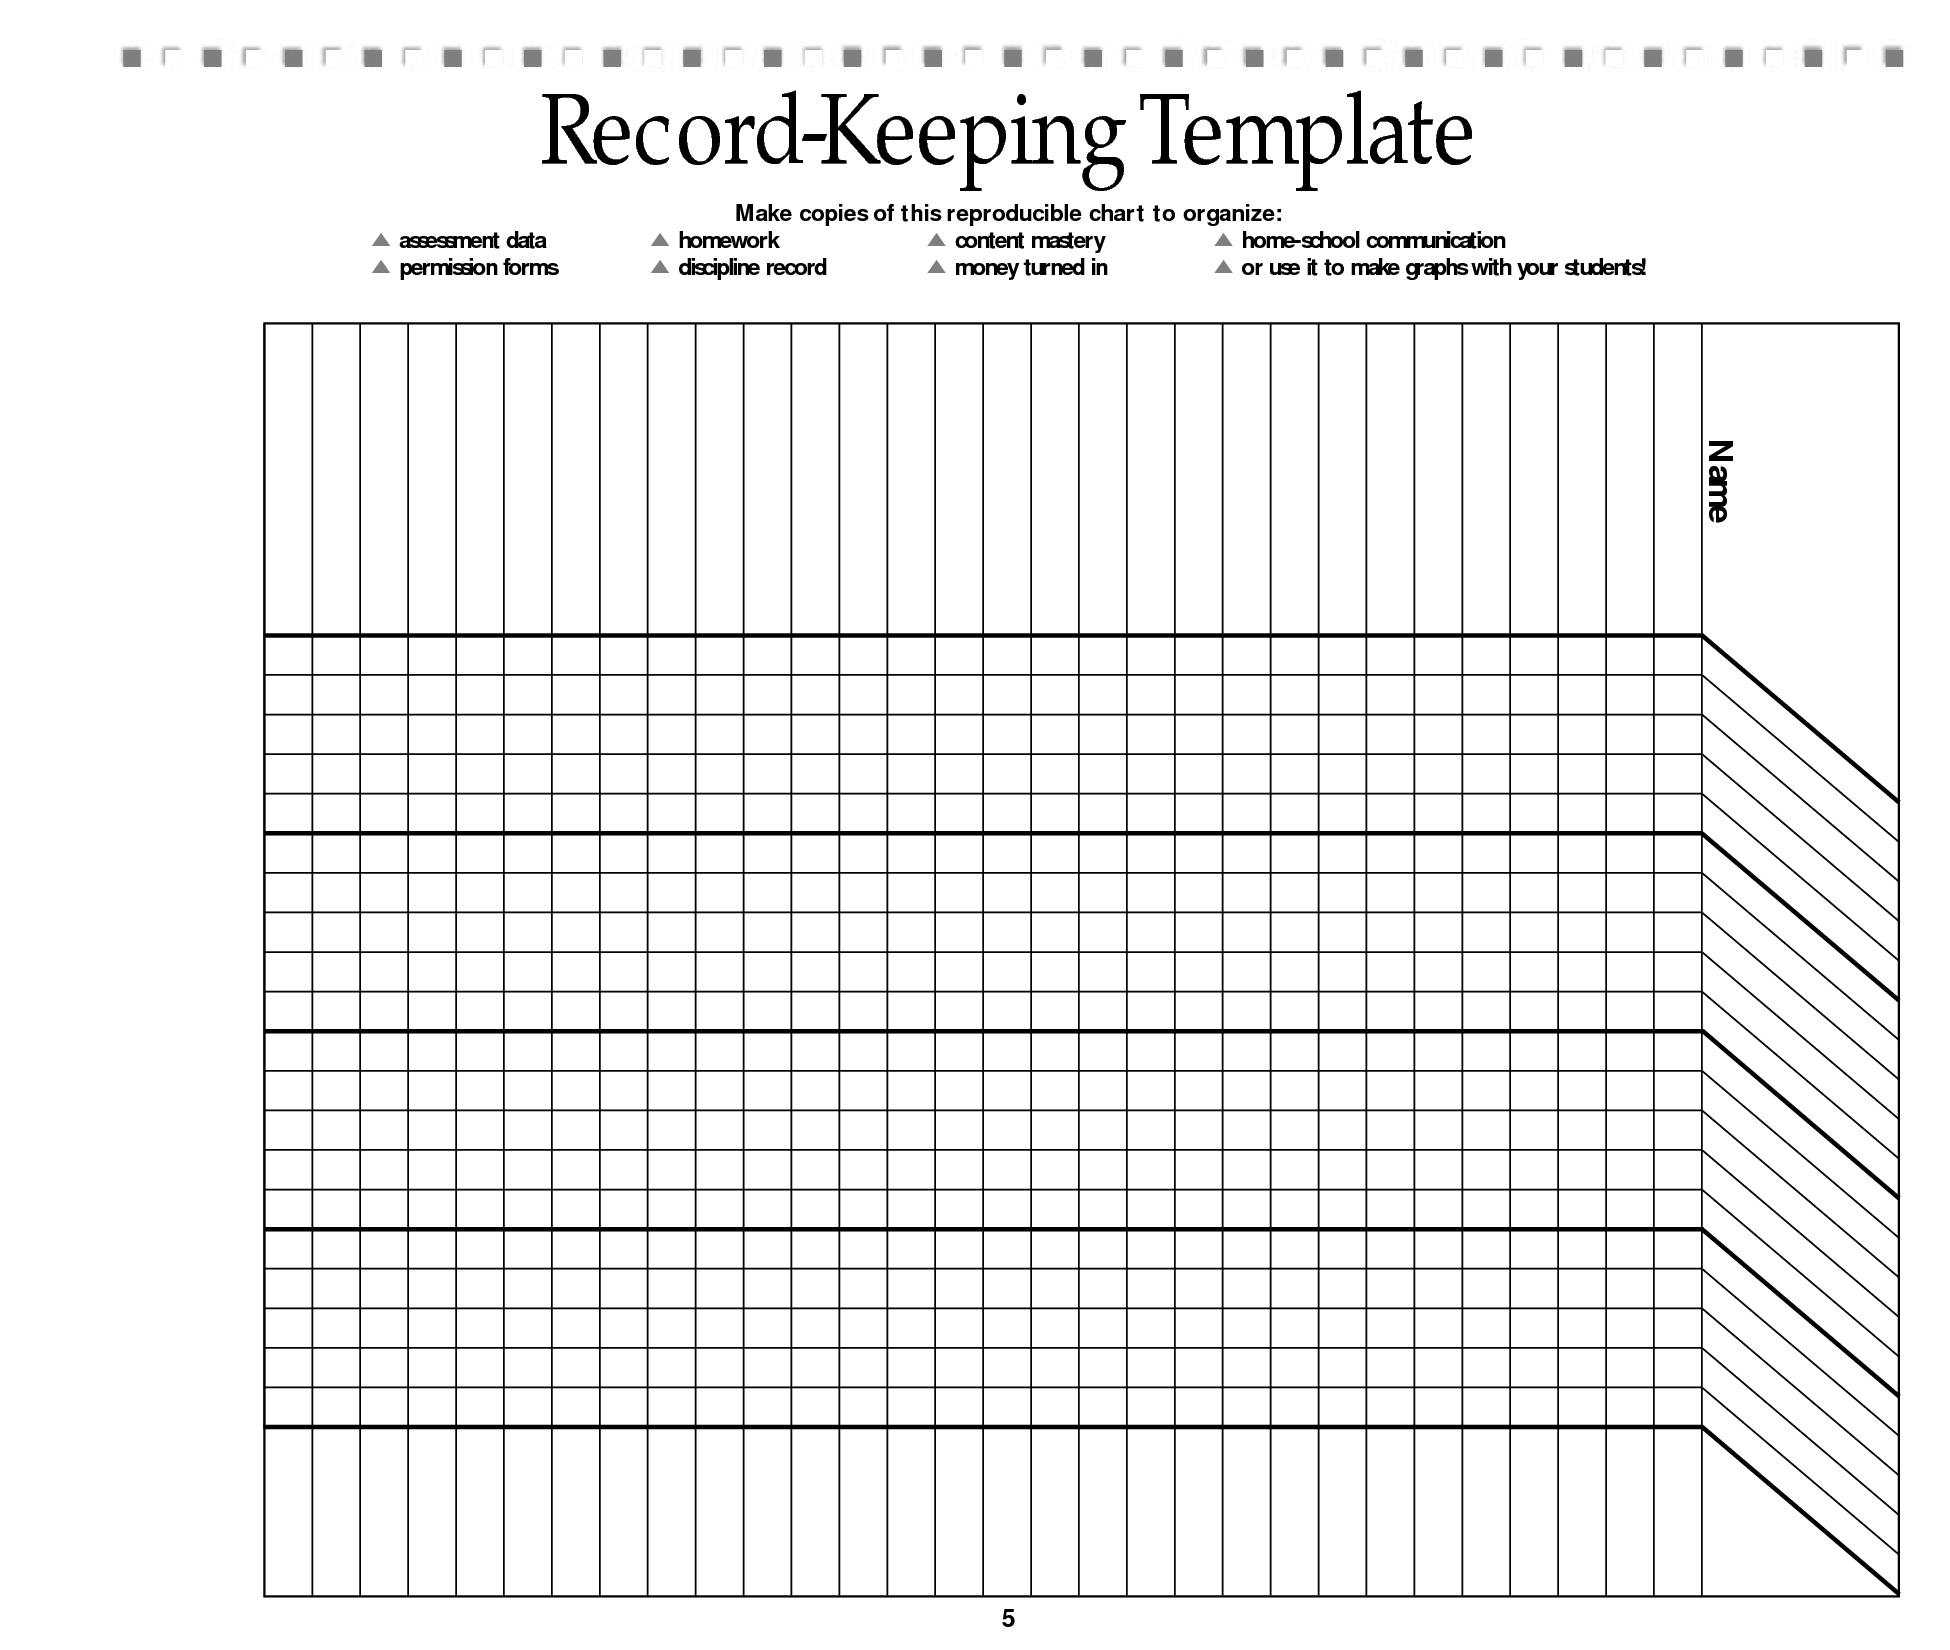 Free Printable Record Keeping Forms | Back To School | Pinterest - Free Printable Attendance Forms For Teachers